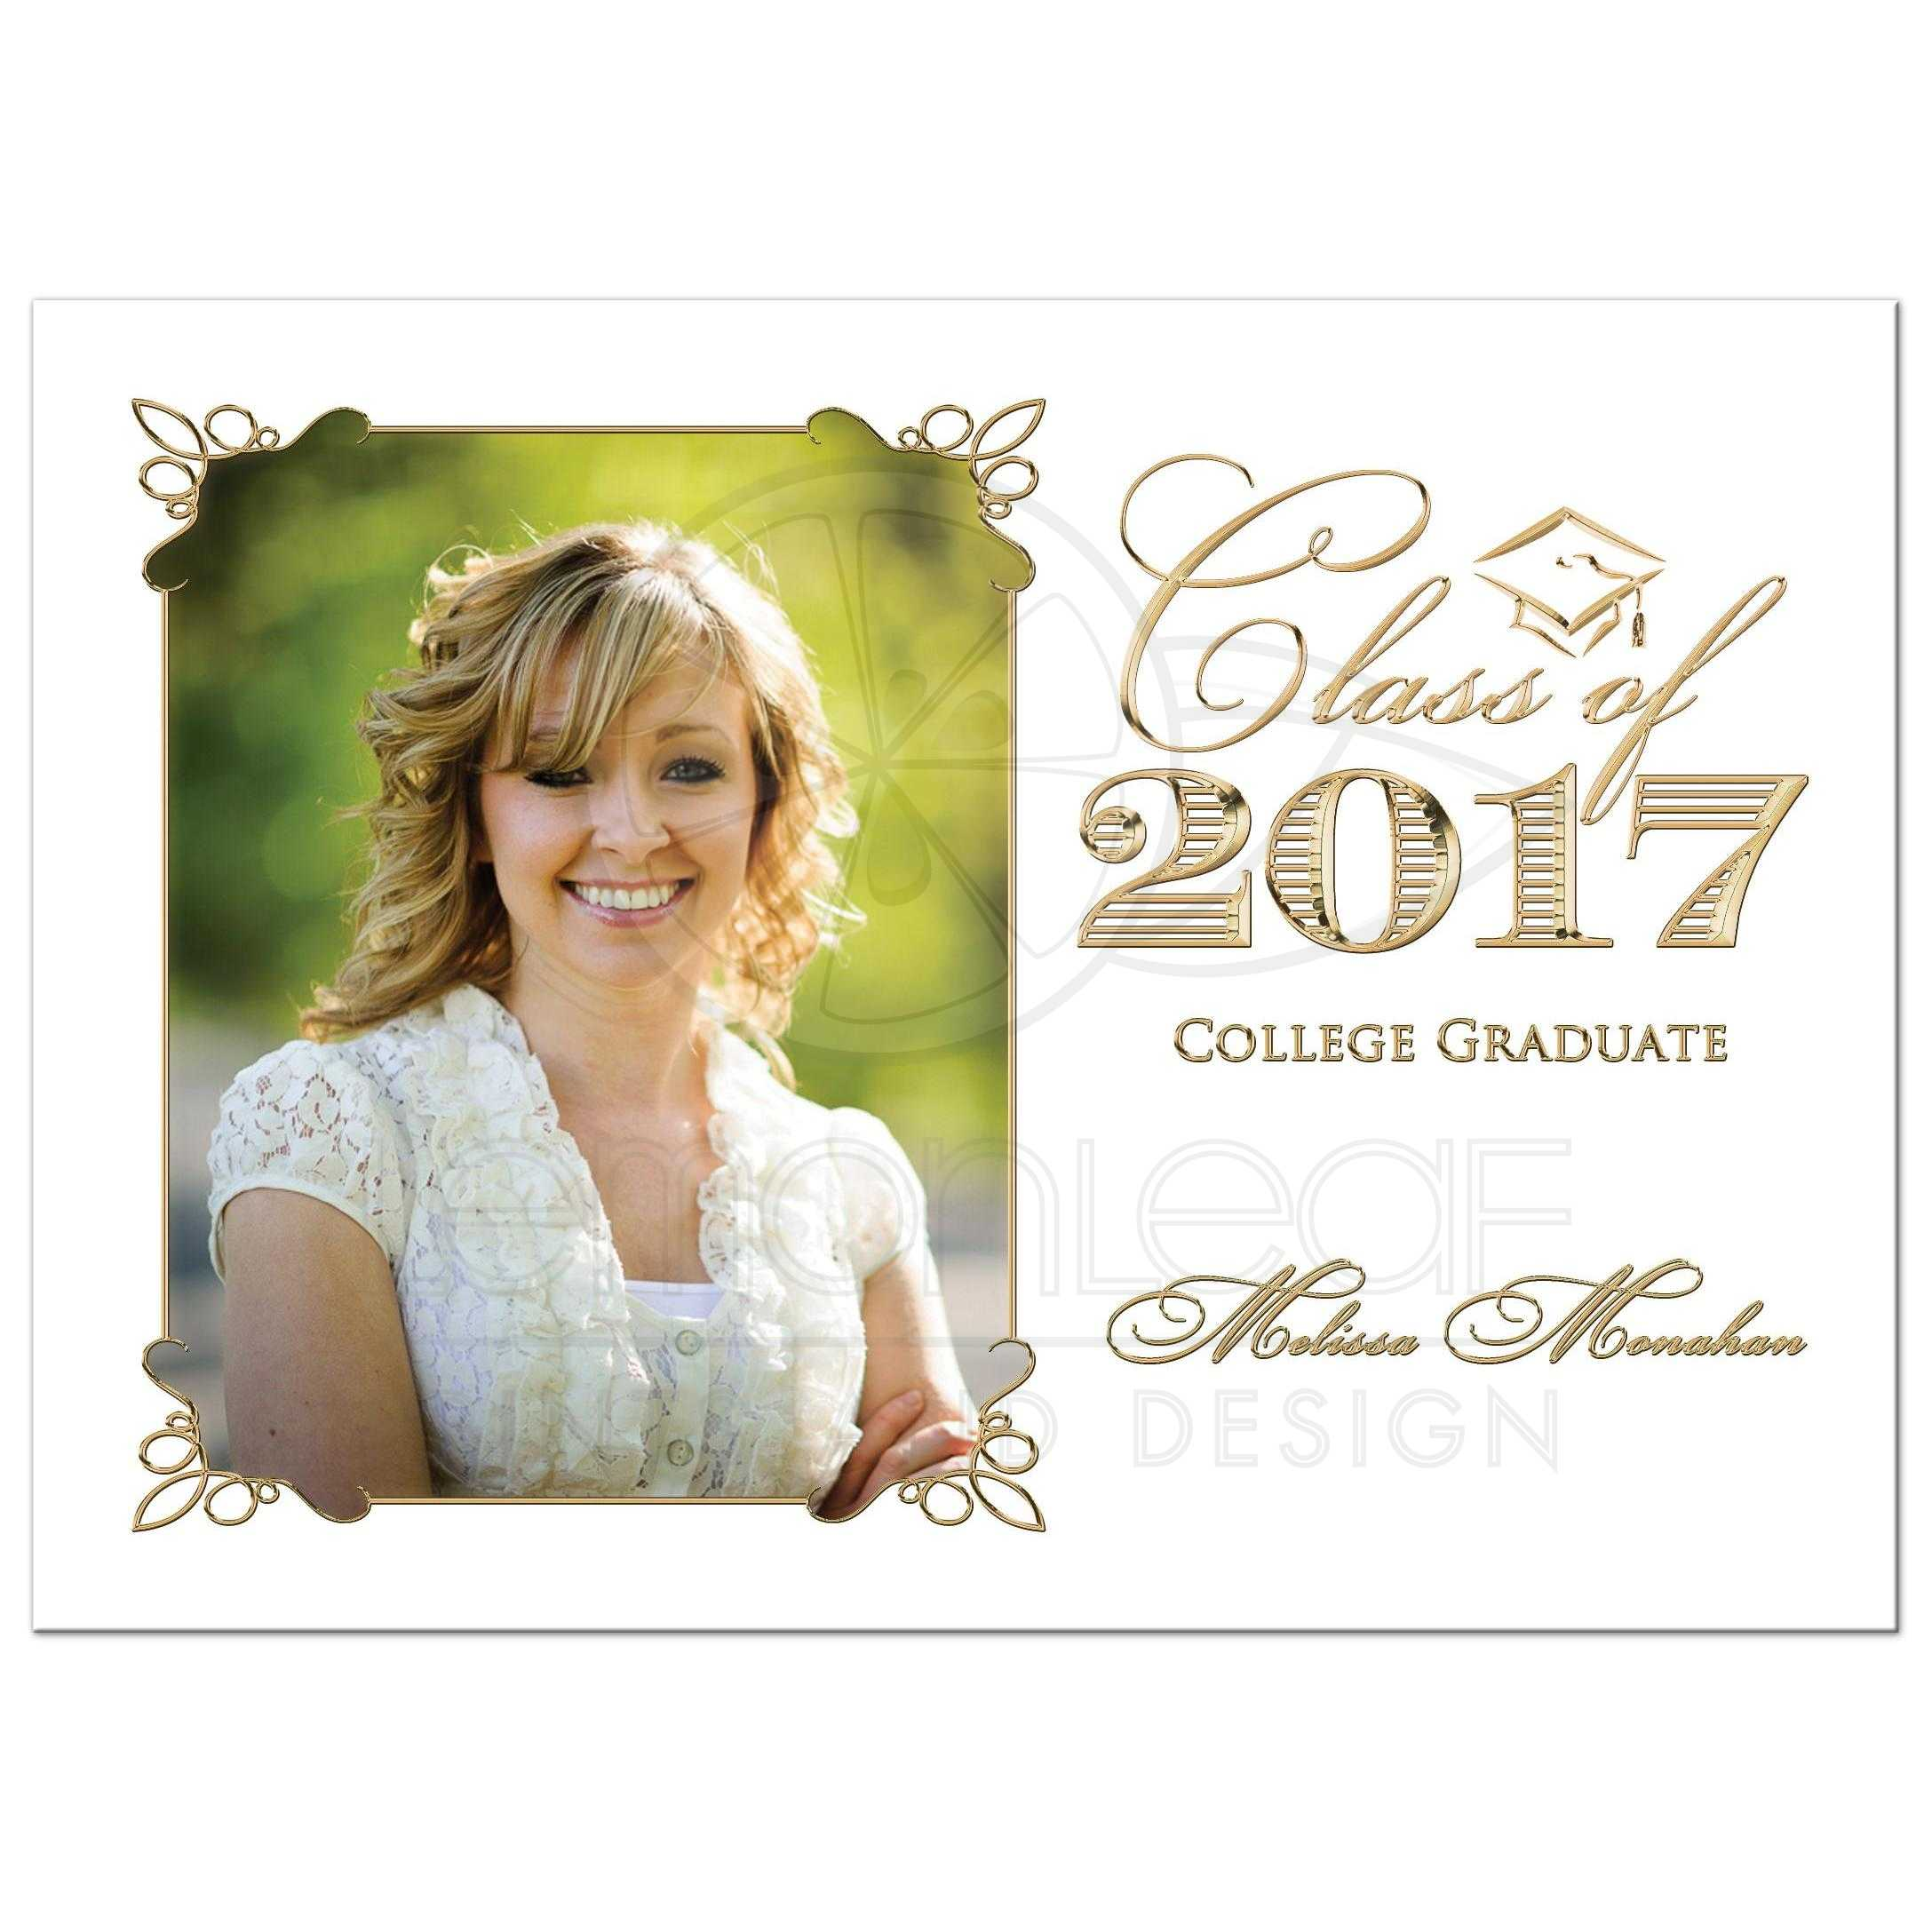 Graduation Party Invitation | Black, White, and Gold | Photo Template